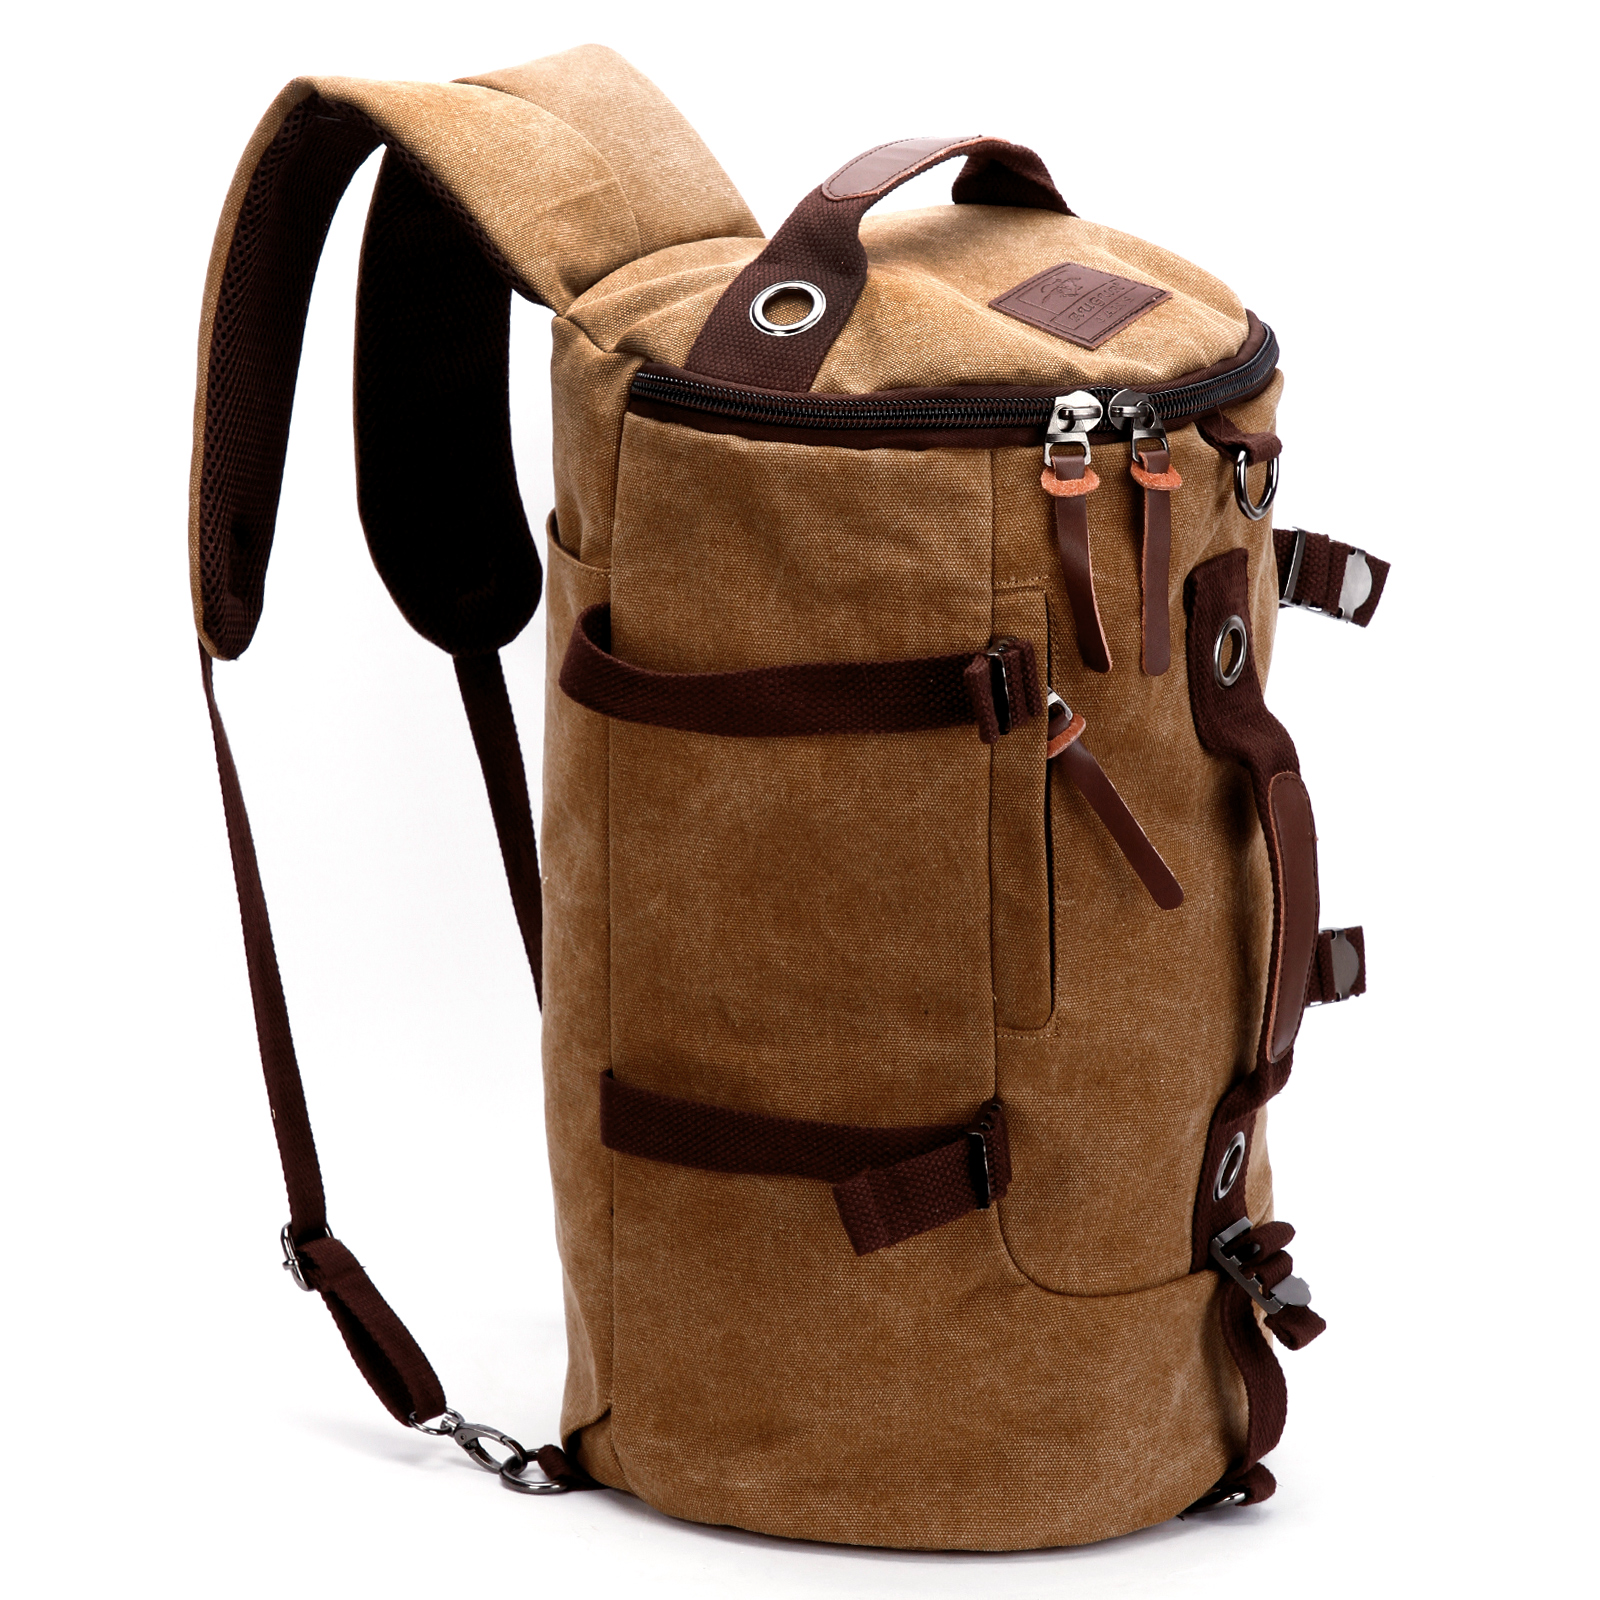 Gym Bag And Backpack: Mens Canvas Backpack Rucksack School Travel Camping Bag